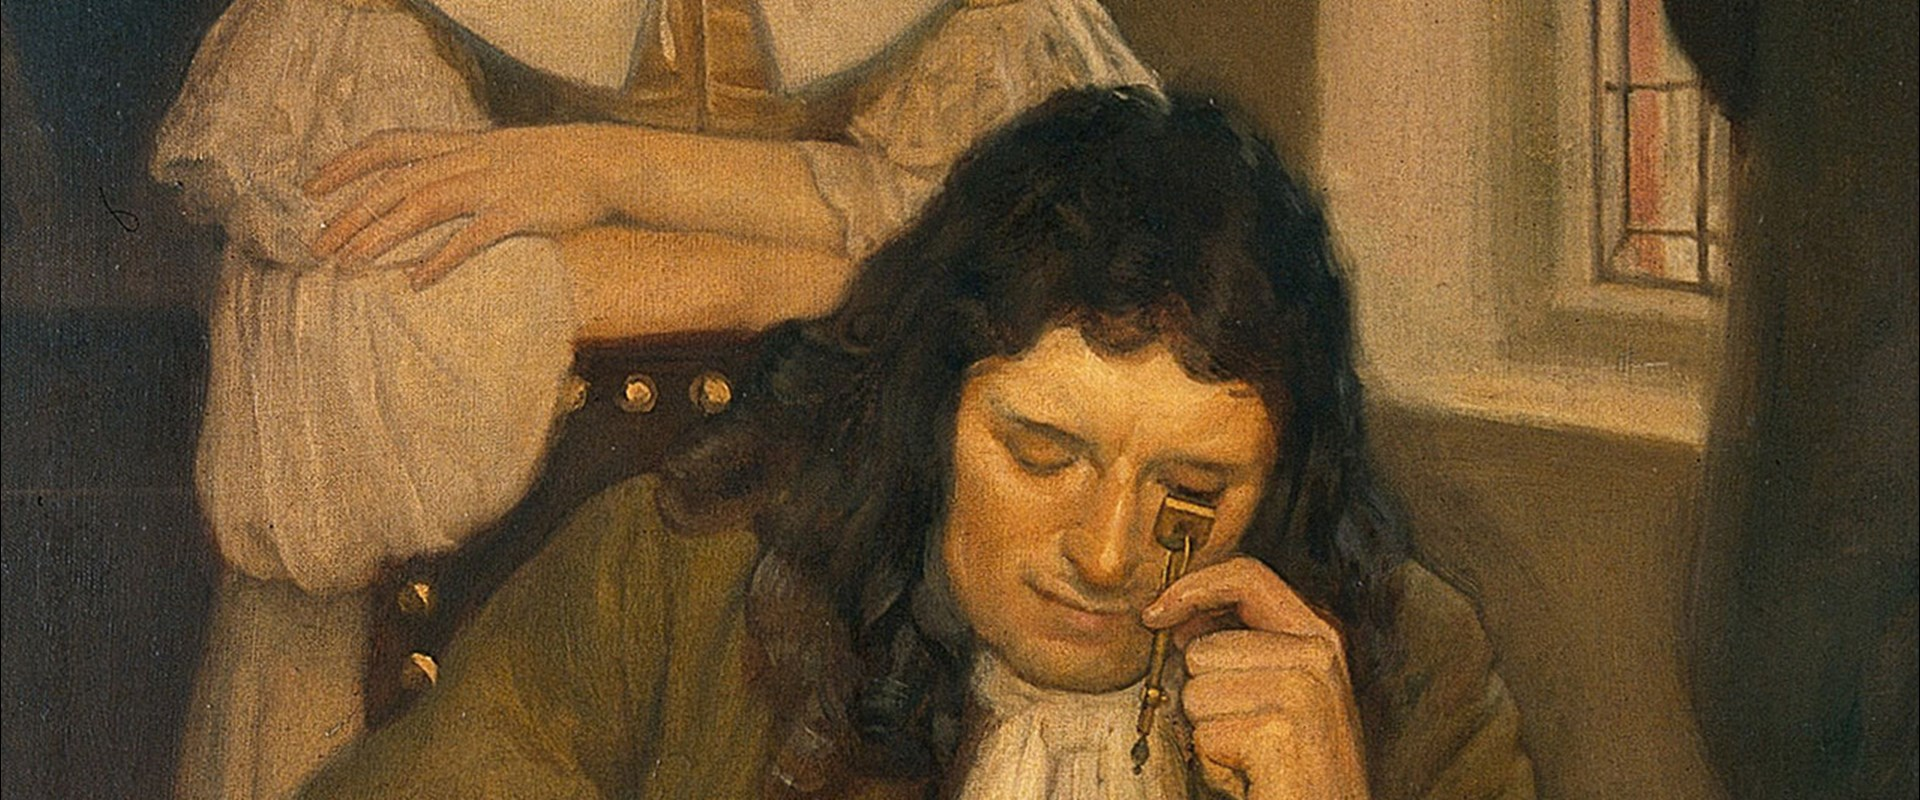 Image result for leeuwenhoek painting